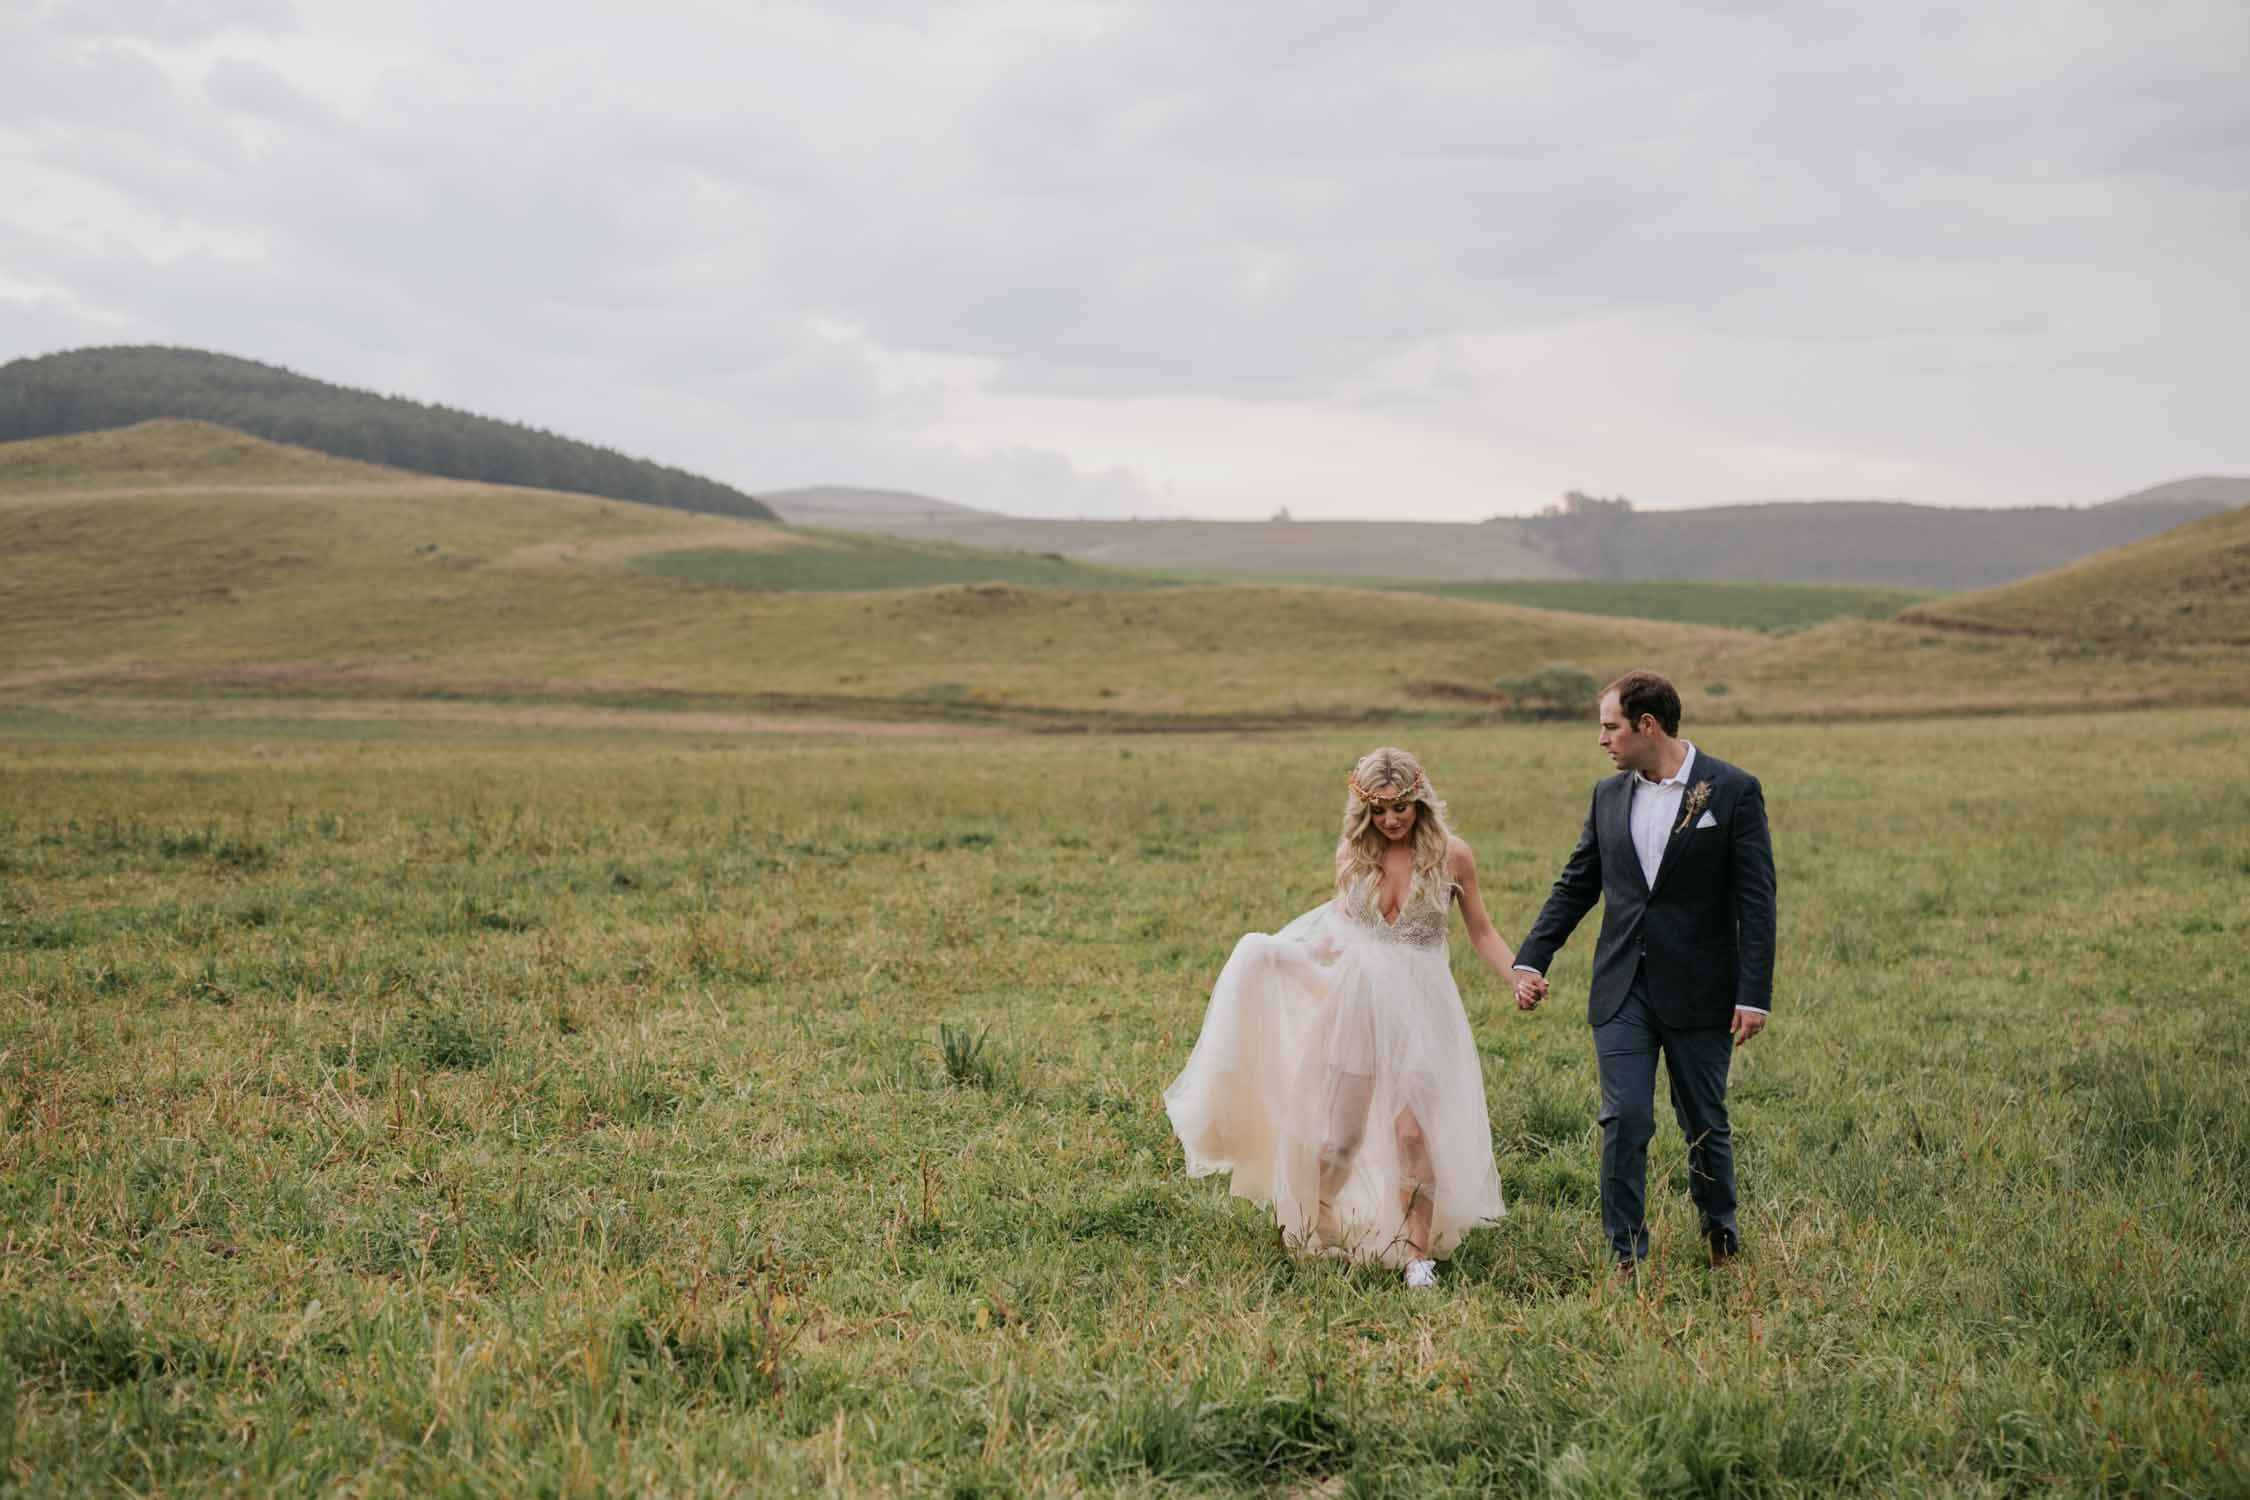 Bride and groom surrounded by green hills and fields at a farm wedding venue in the Natal Midlands near Nottingham Road. Bride is wearing shorts under her wedding dress.